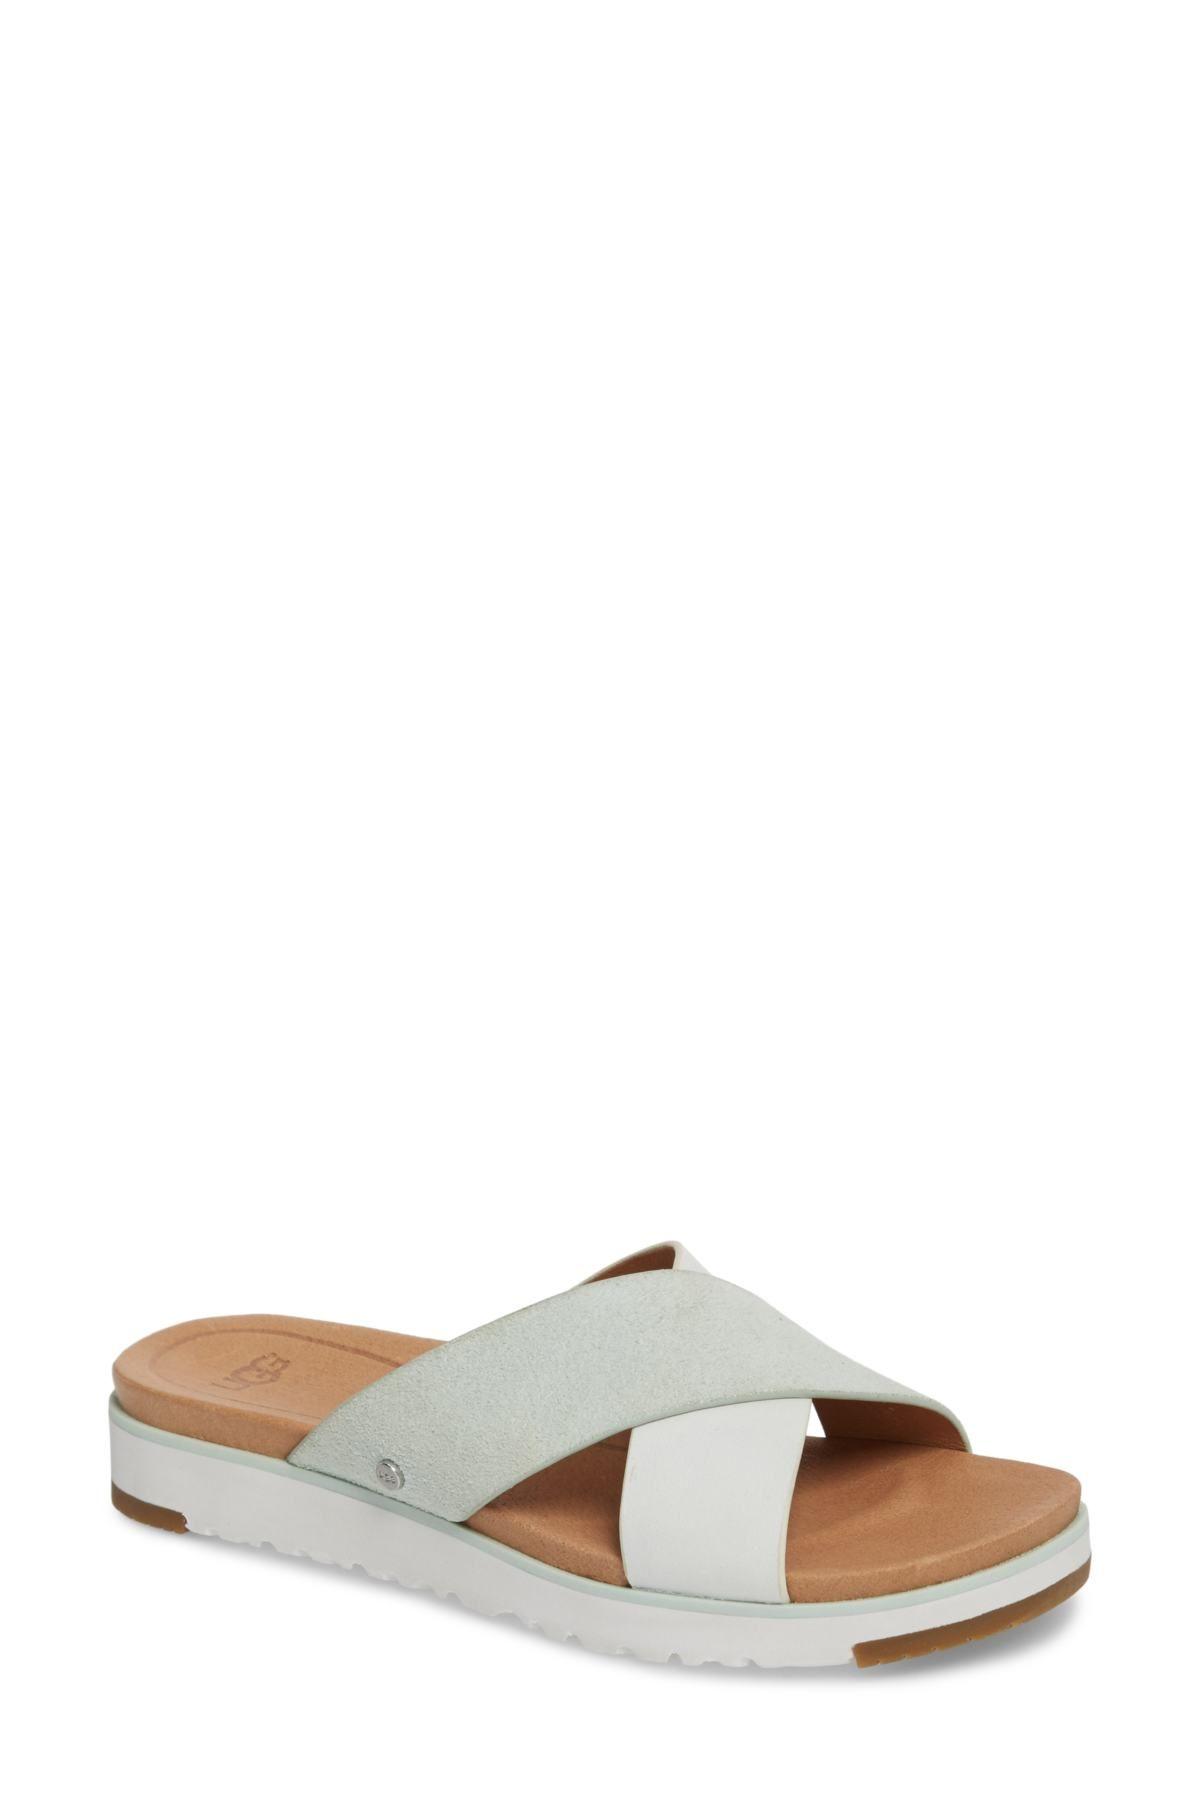 b3d4dd9cd14 UGG(R) 'Kari' Sandal in 2019 | Outfits | Sandals, Uggs, Comfortable ...